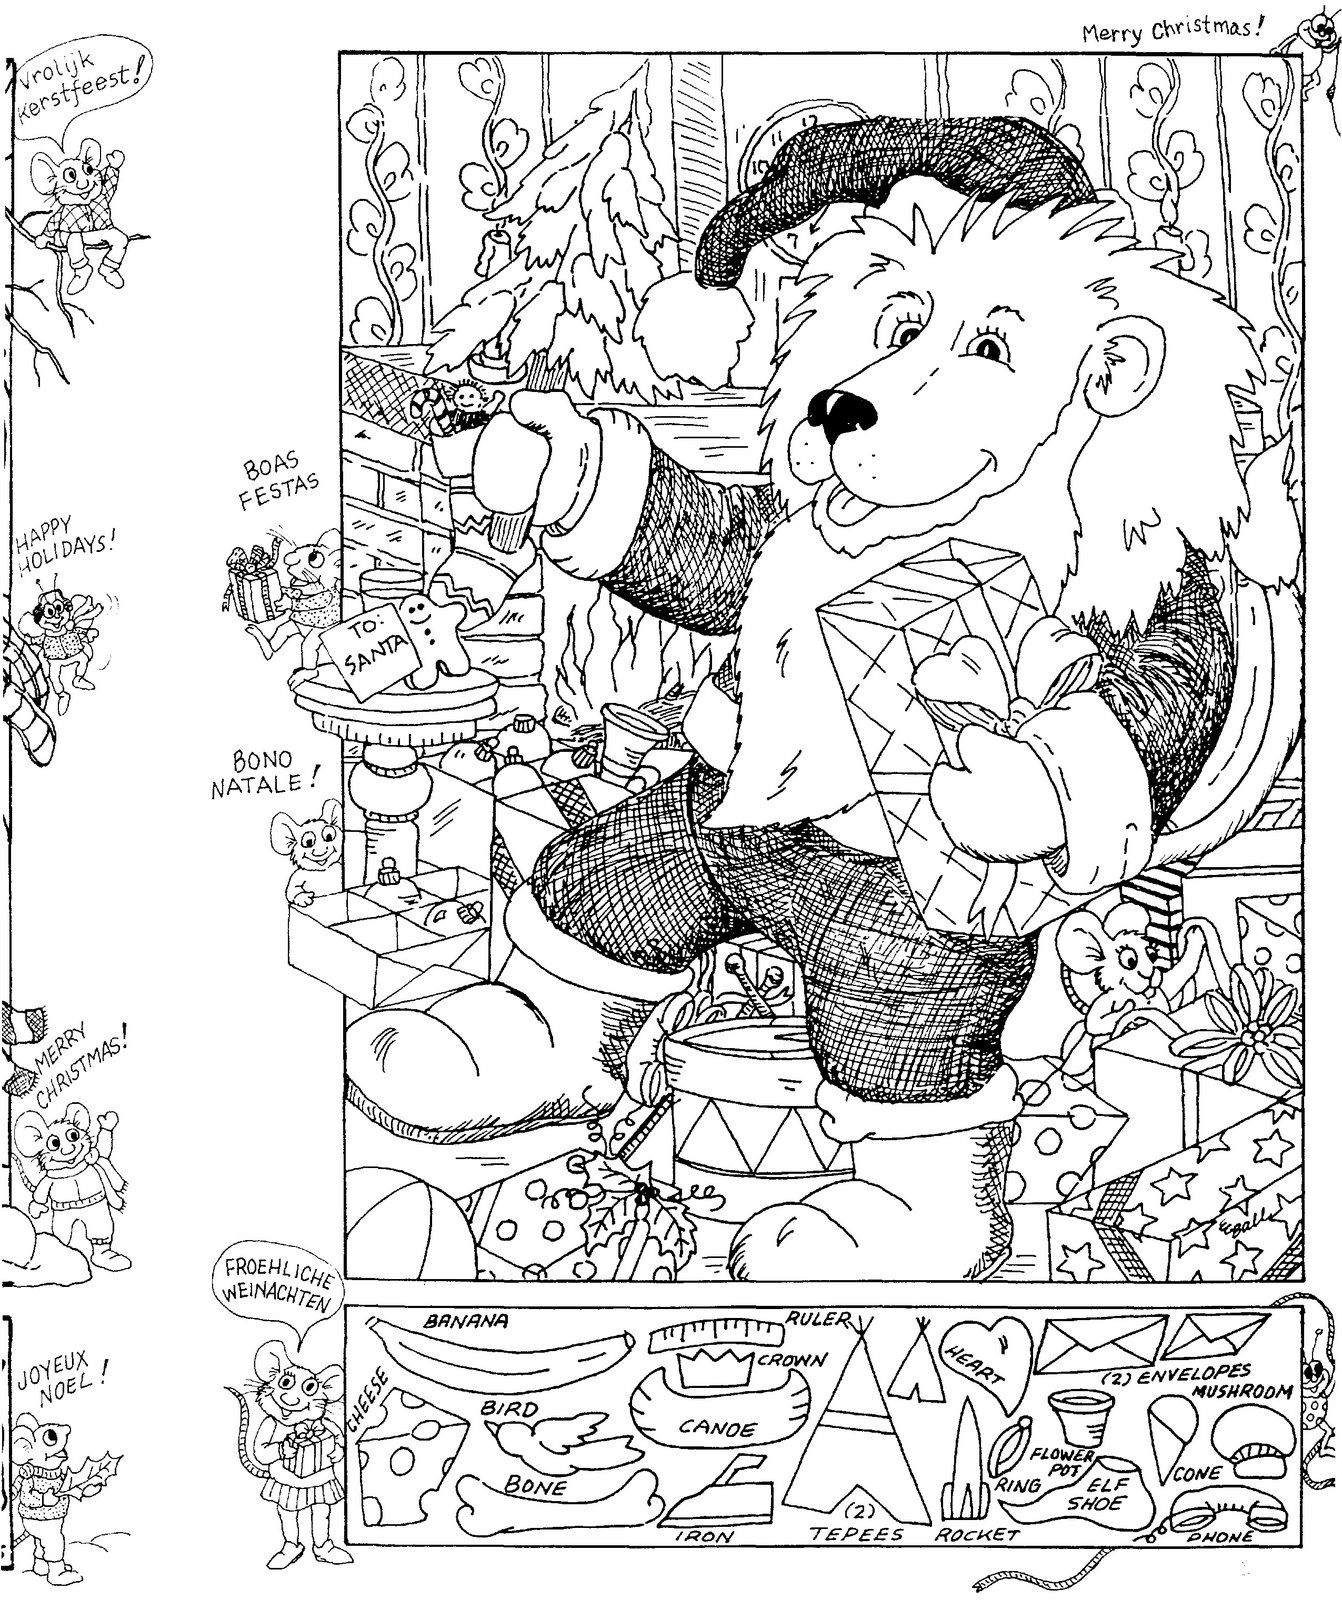 joyful moments with donna j shepherd christmas hidden picture puzzlecoloring page